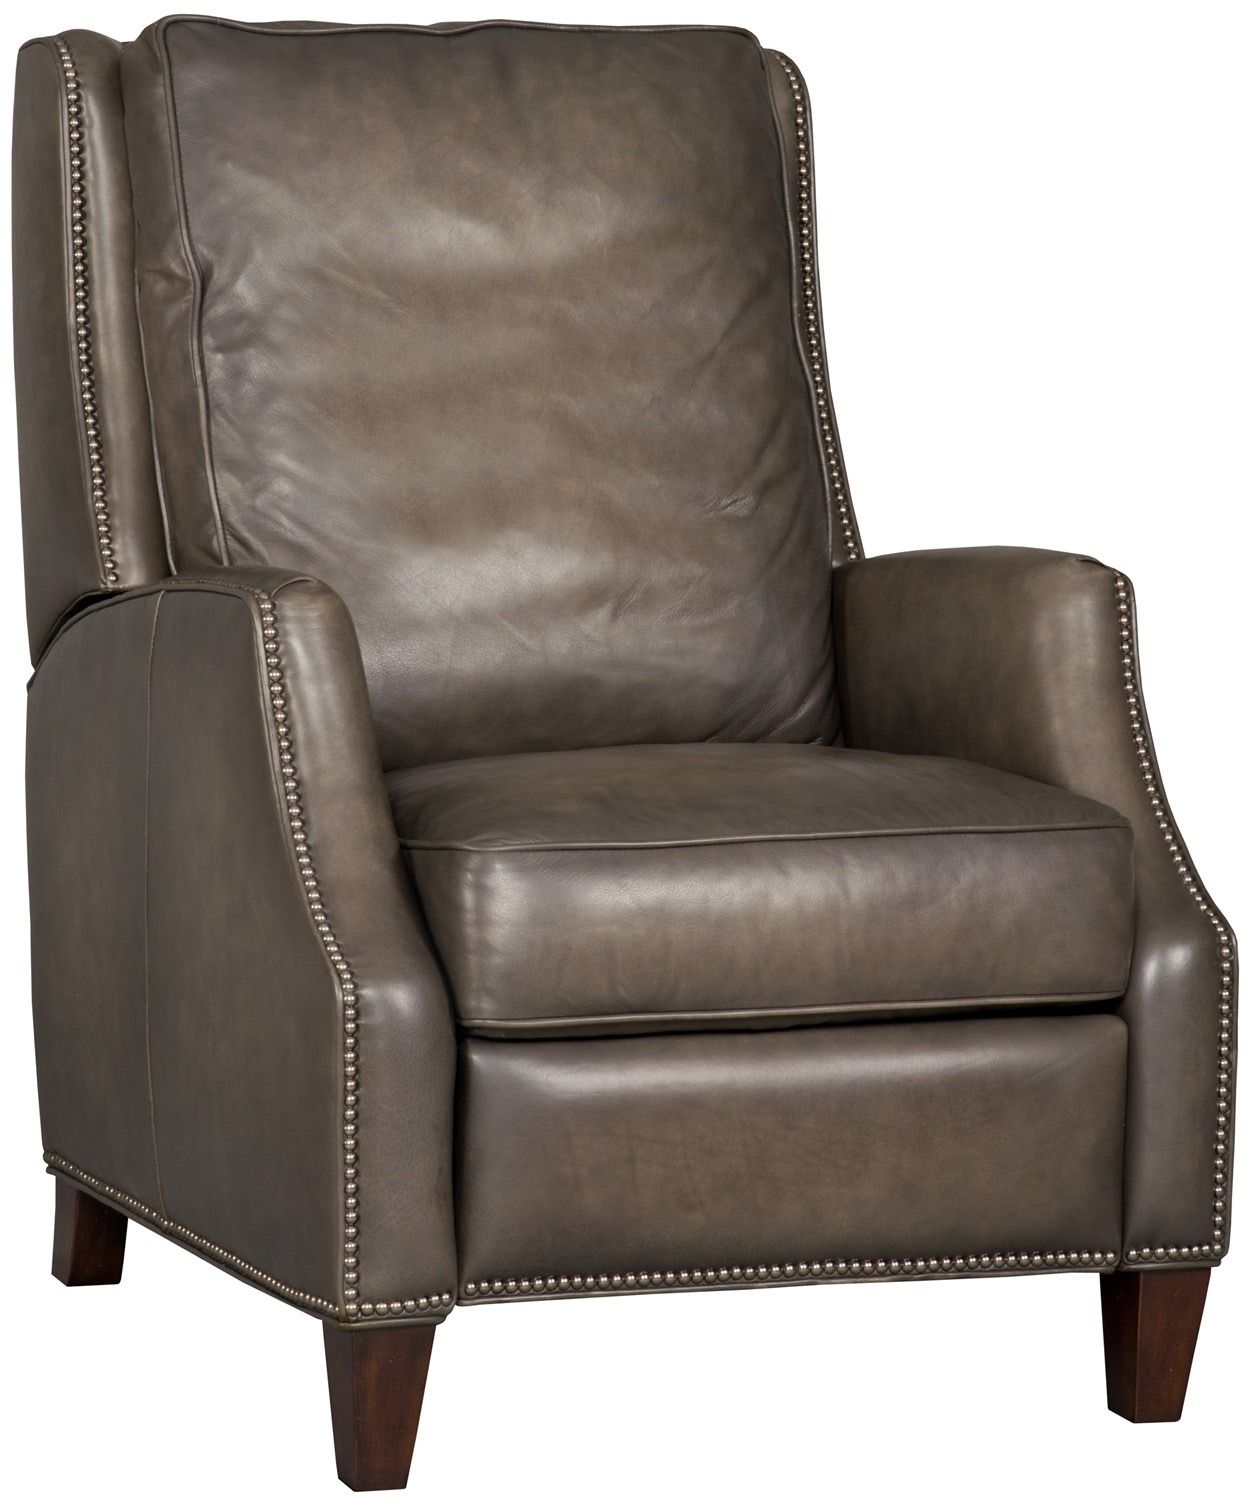 Leather Reclining Chairs High Leg Leather Recliner Chair In Slate Green Gray By Hooker